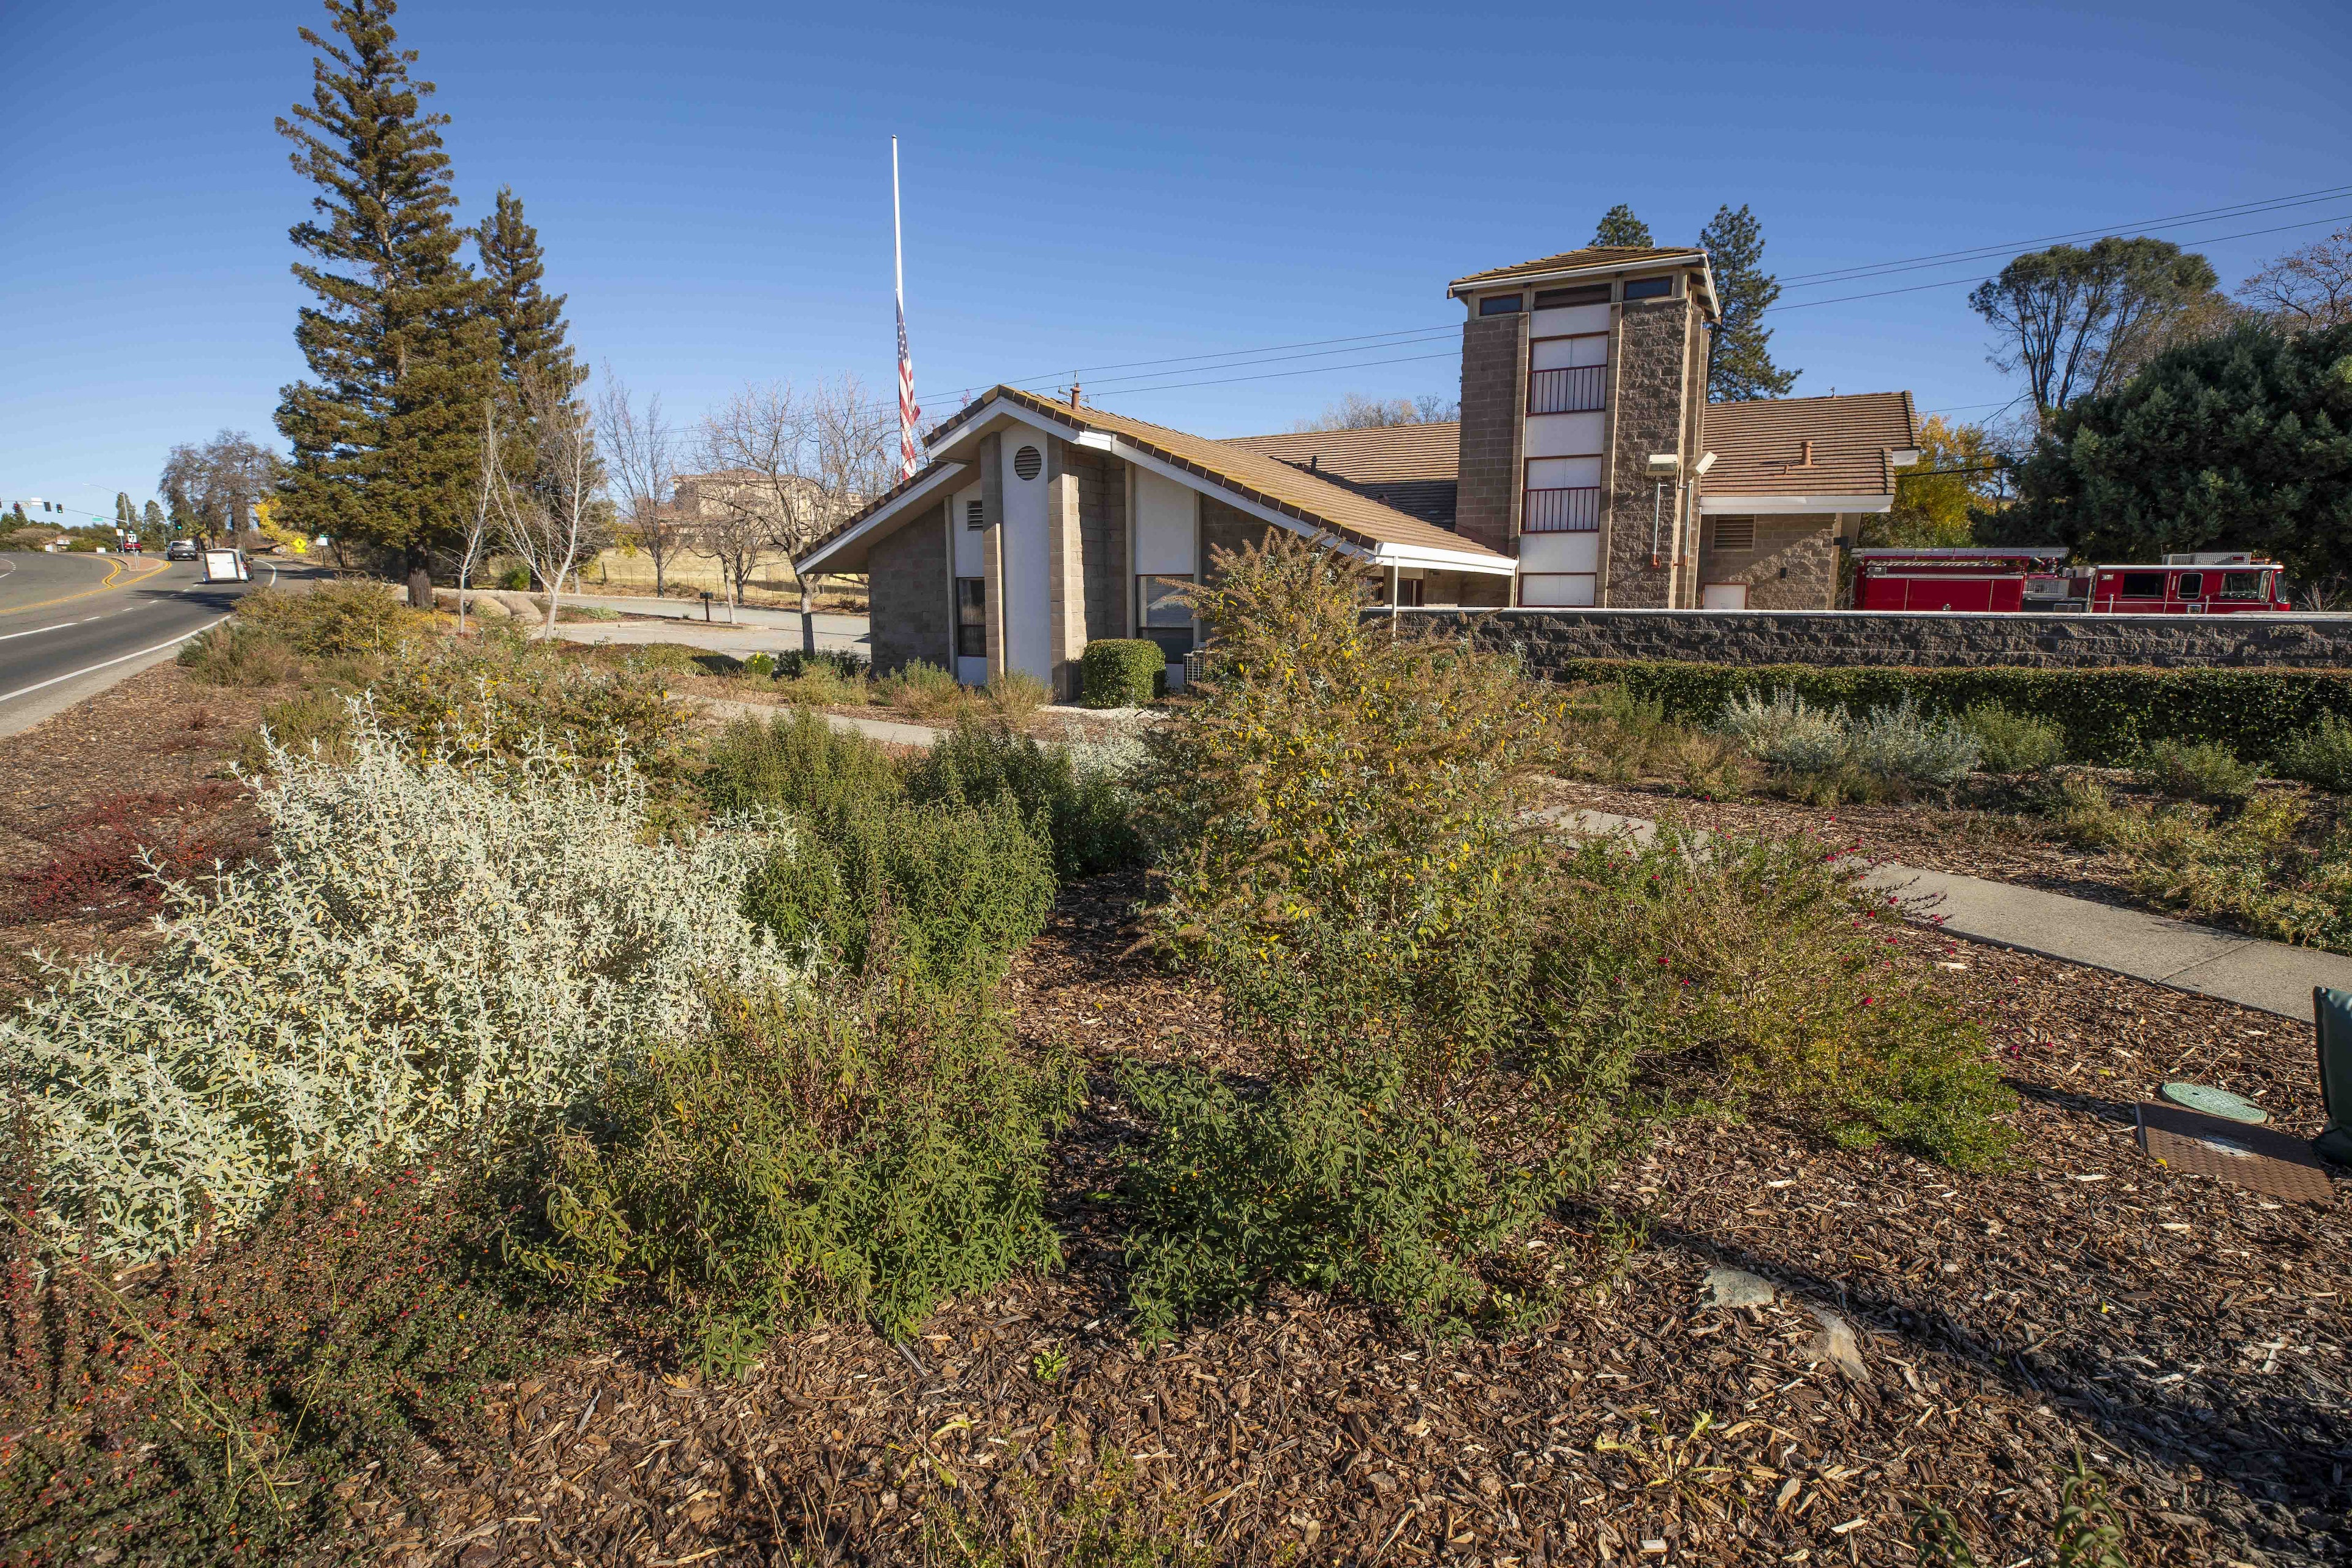 Photo of Maidu Fire Station landscaped with fire-wise and water-wise plants